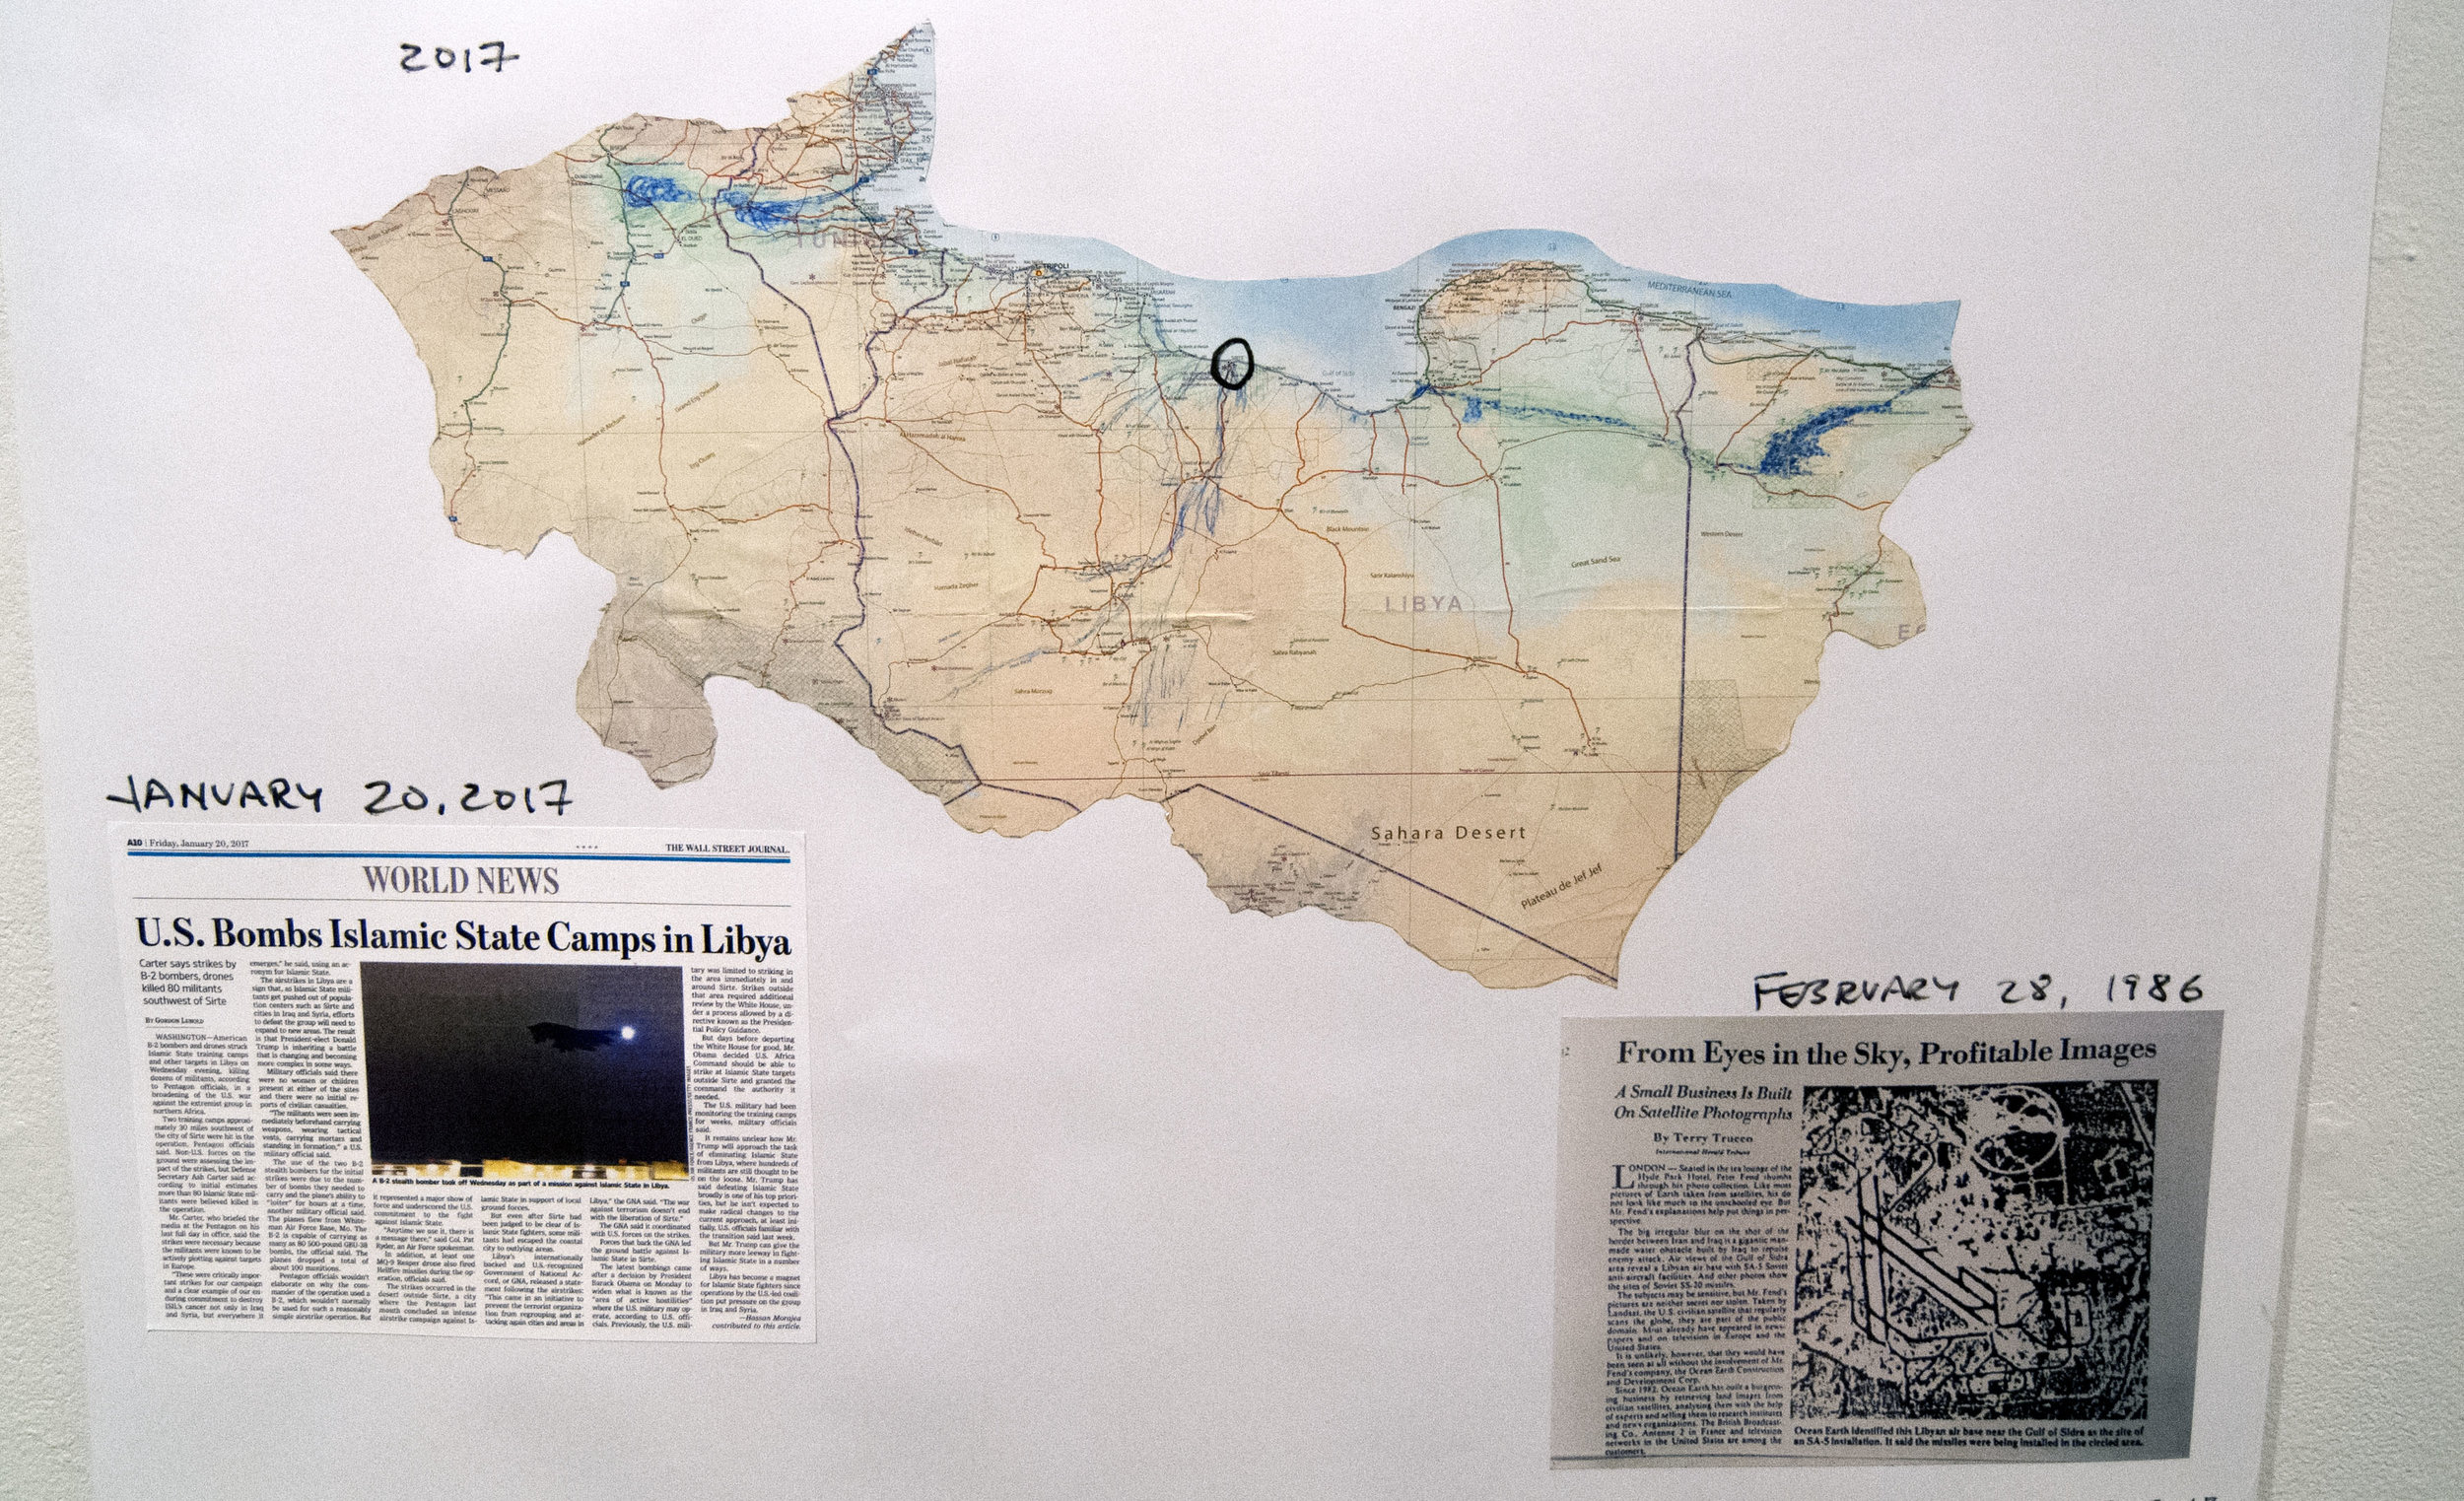 """First subject for Shadow Defense Secretary, due to WSJ news article on our first day, January 20, 2017. The site of bombing by two B-2s was studied by the Shadow Defense Secretary in Spring 1986. A record of this exists in the book """"Ocean Earth,"""" including a drawing made in 1986 noticing a """"gap"""" between the wadi (ephemeral river-bed) there and the Sea. An image of the air base, not showing the SAM-5 sites, was published in the International Herald Tribune article about Ocean Earth, February 26, 1986. The site is in the middle of a larger sea-basin concavity, that of the Gulf of Sirte and its immediate coastal outflow.The blue and green markings show sub-sea-level troughs near the Sea which Ocean Earth proposes to flood."""